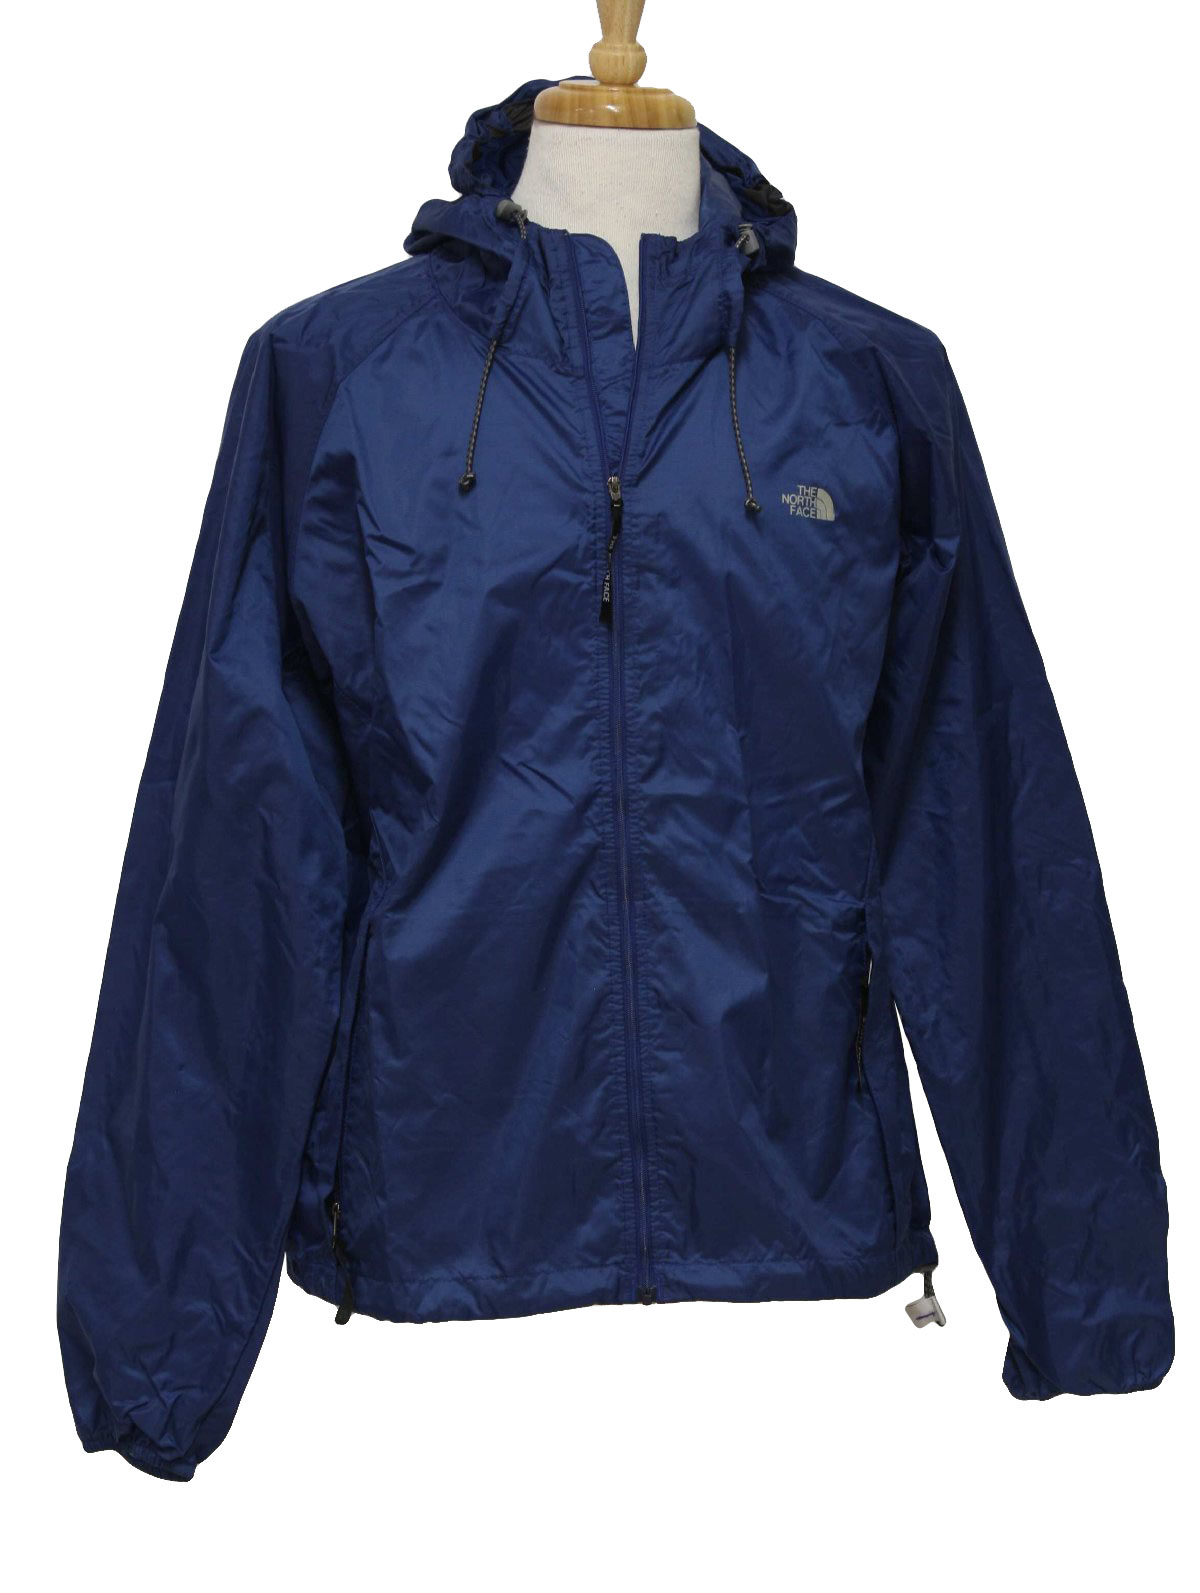 1990s North Face Jacket: 90s -North Face- Unisex navy blue nylon ...